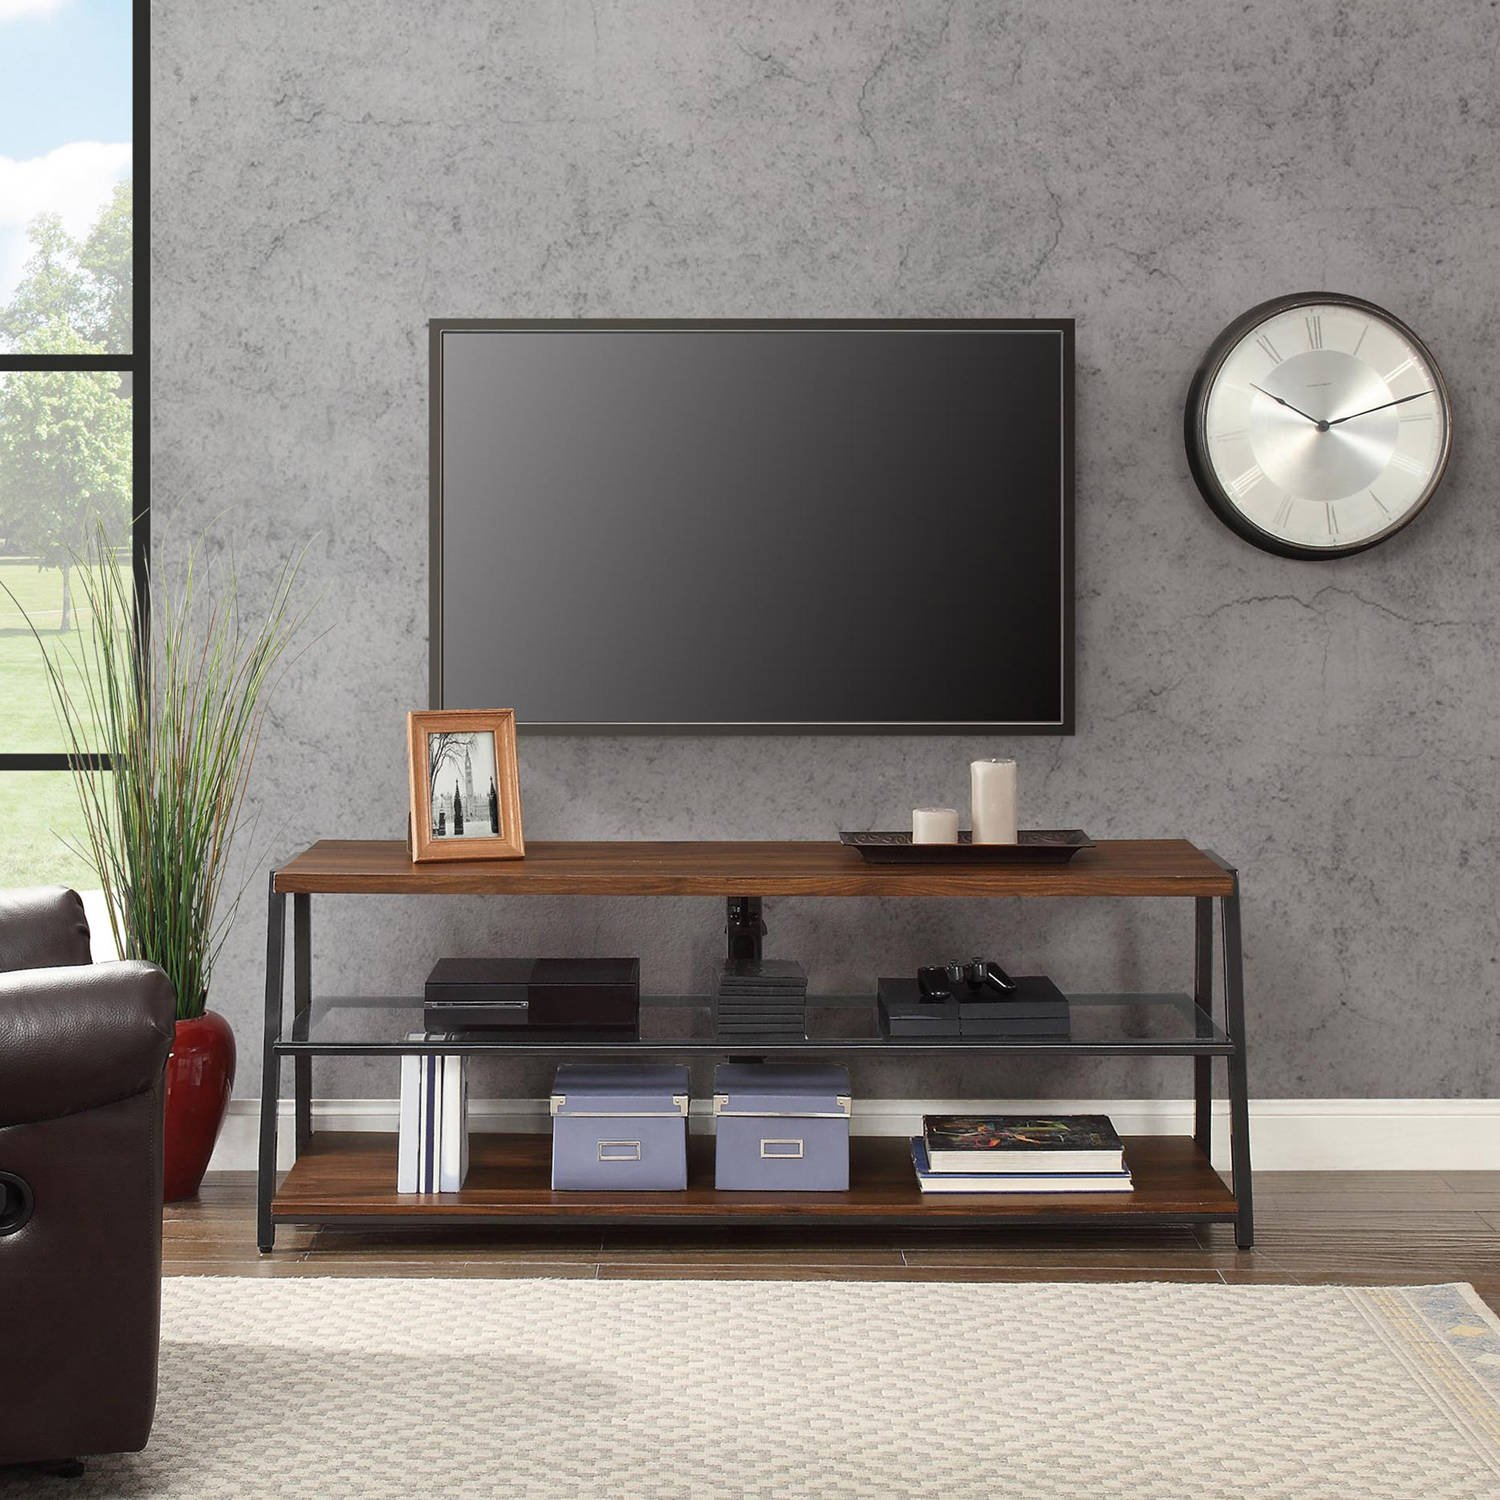 Mainstays 3-in-1 Medium Brown TV Stand for TV s up to 70 , Dimensions 59.75 W x 21 D x 22-55.75 H